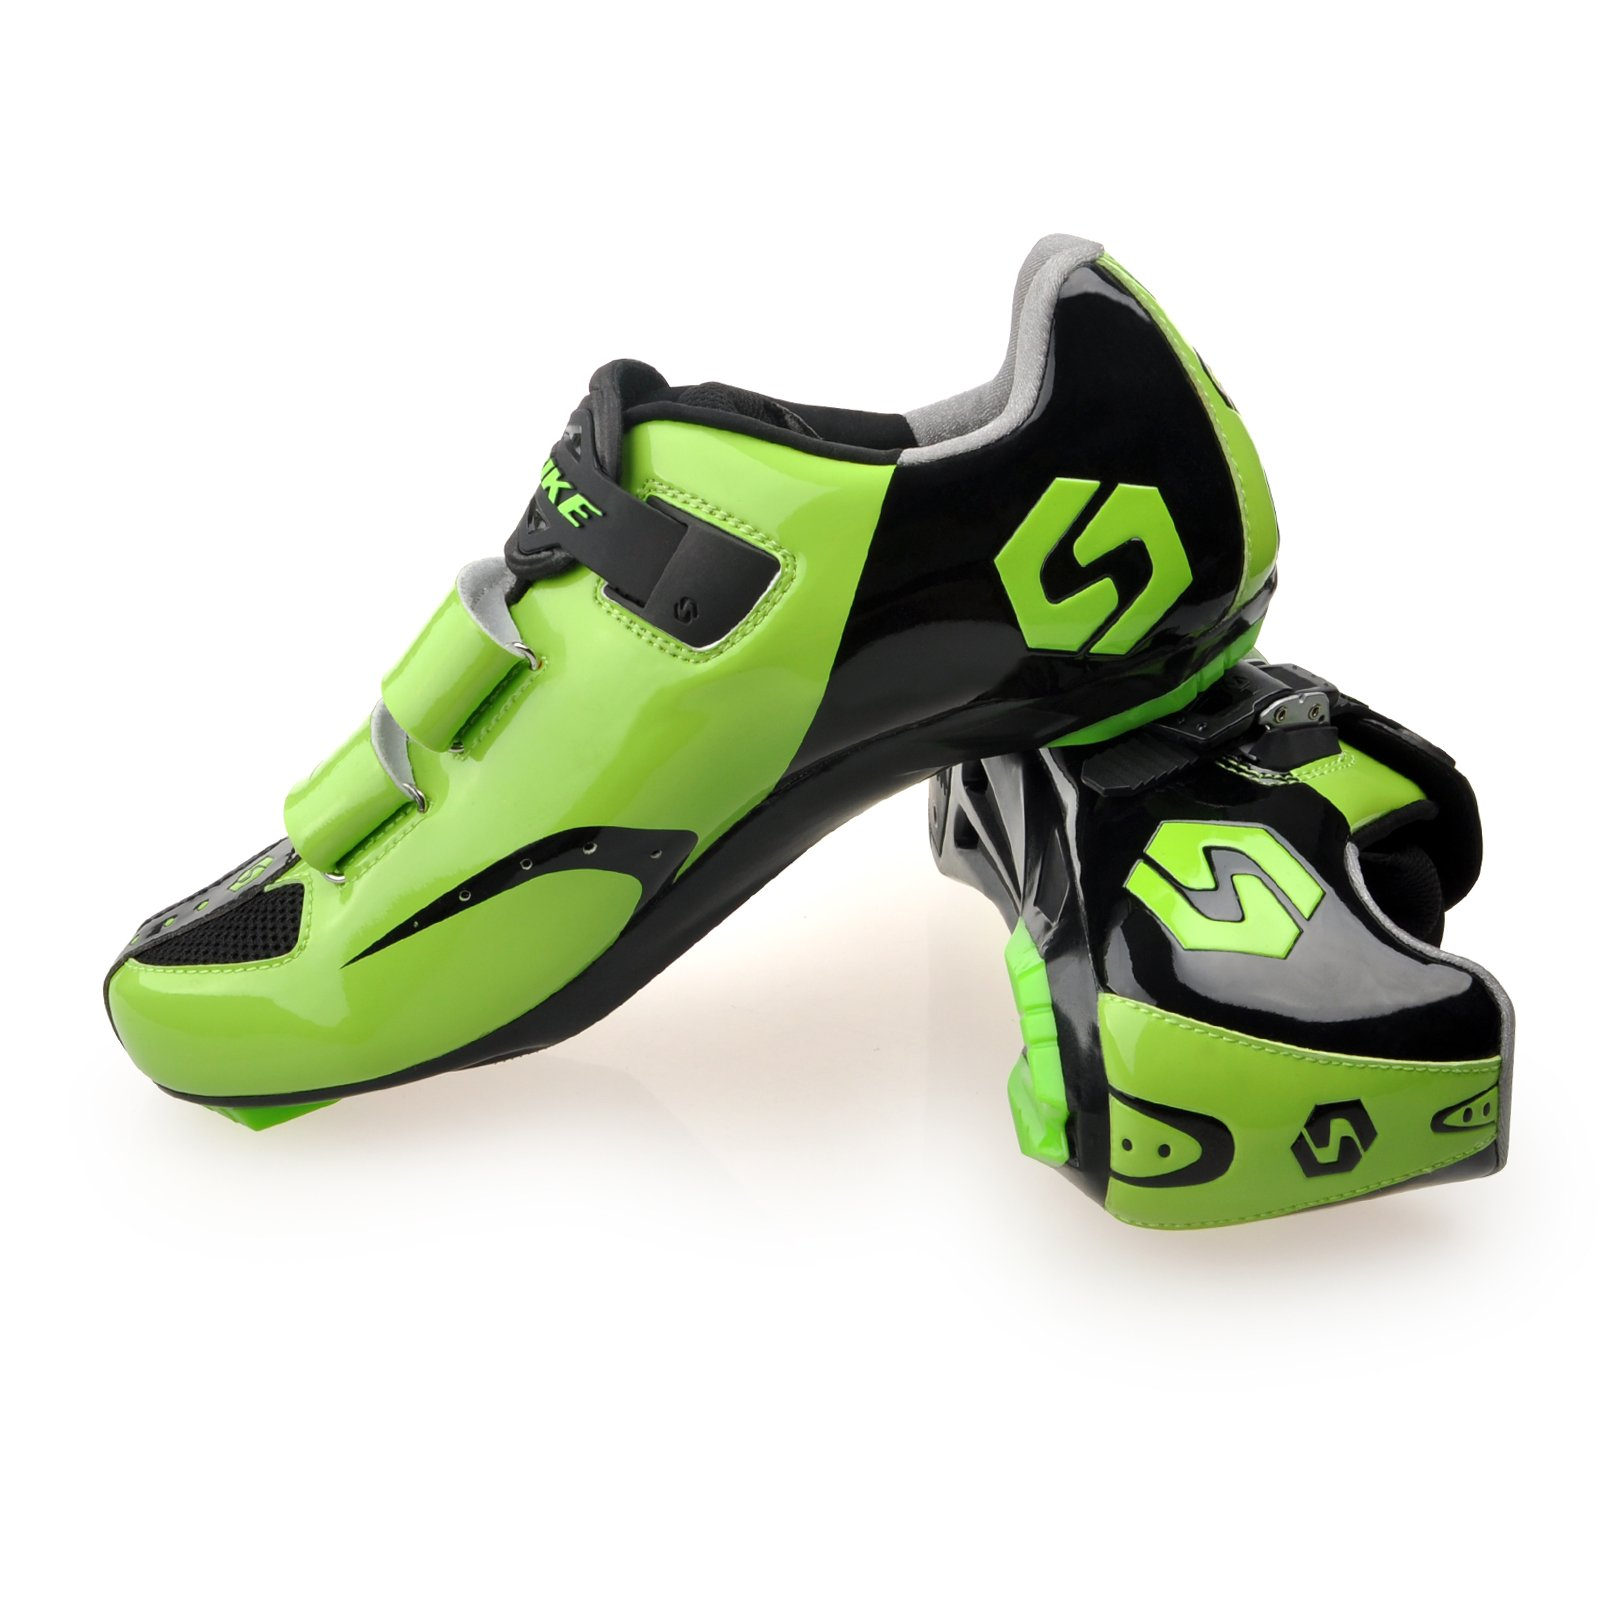 Smartodoors MTB Road Cycling Shoes with Carbon Soles SD002 (US11/EU44/Ft27.5cm)